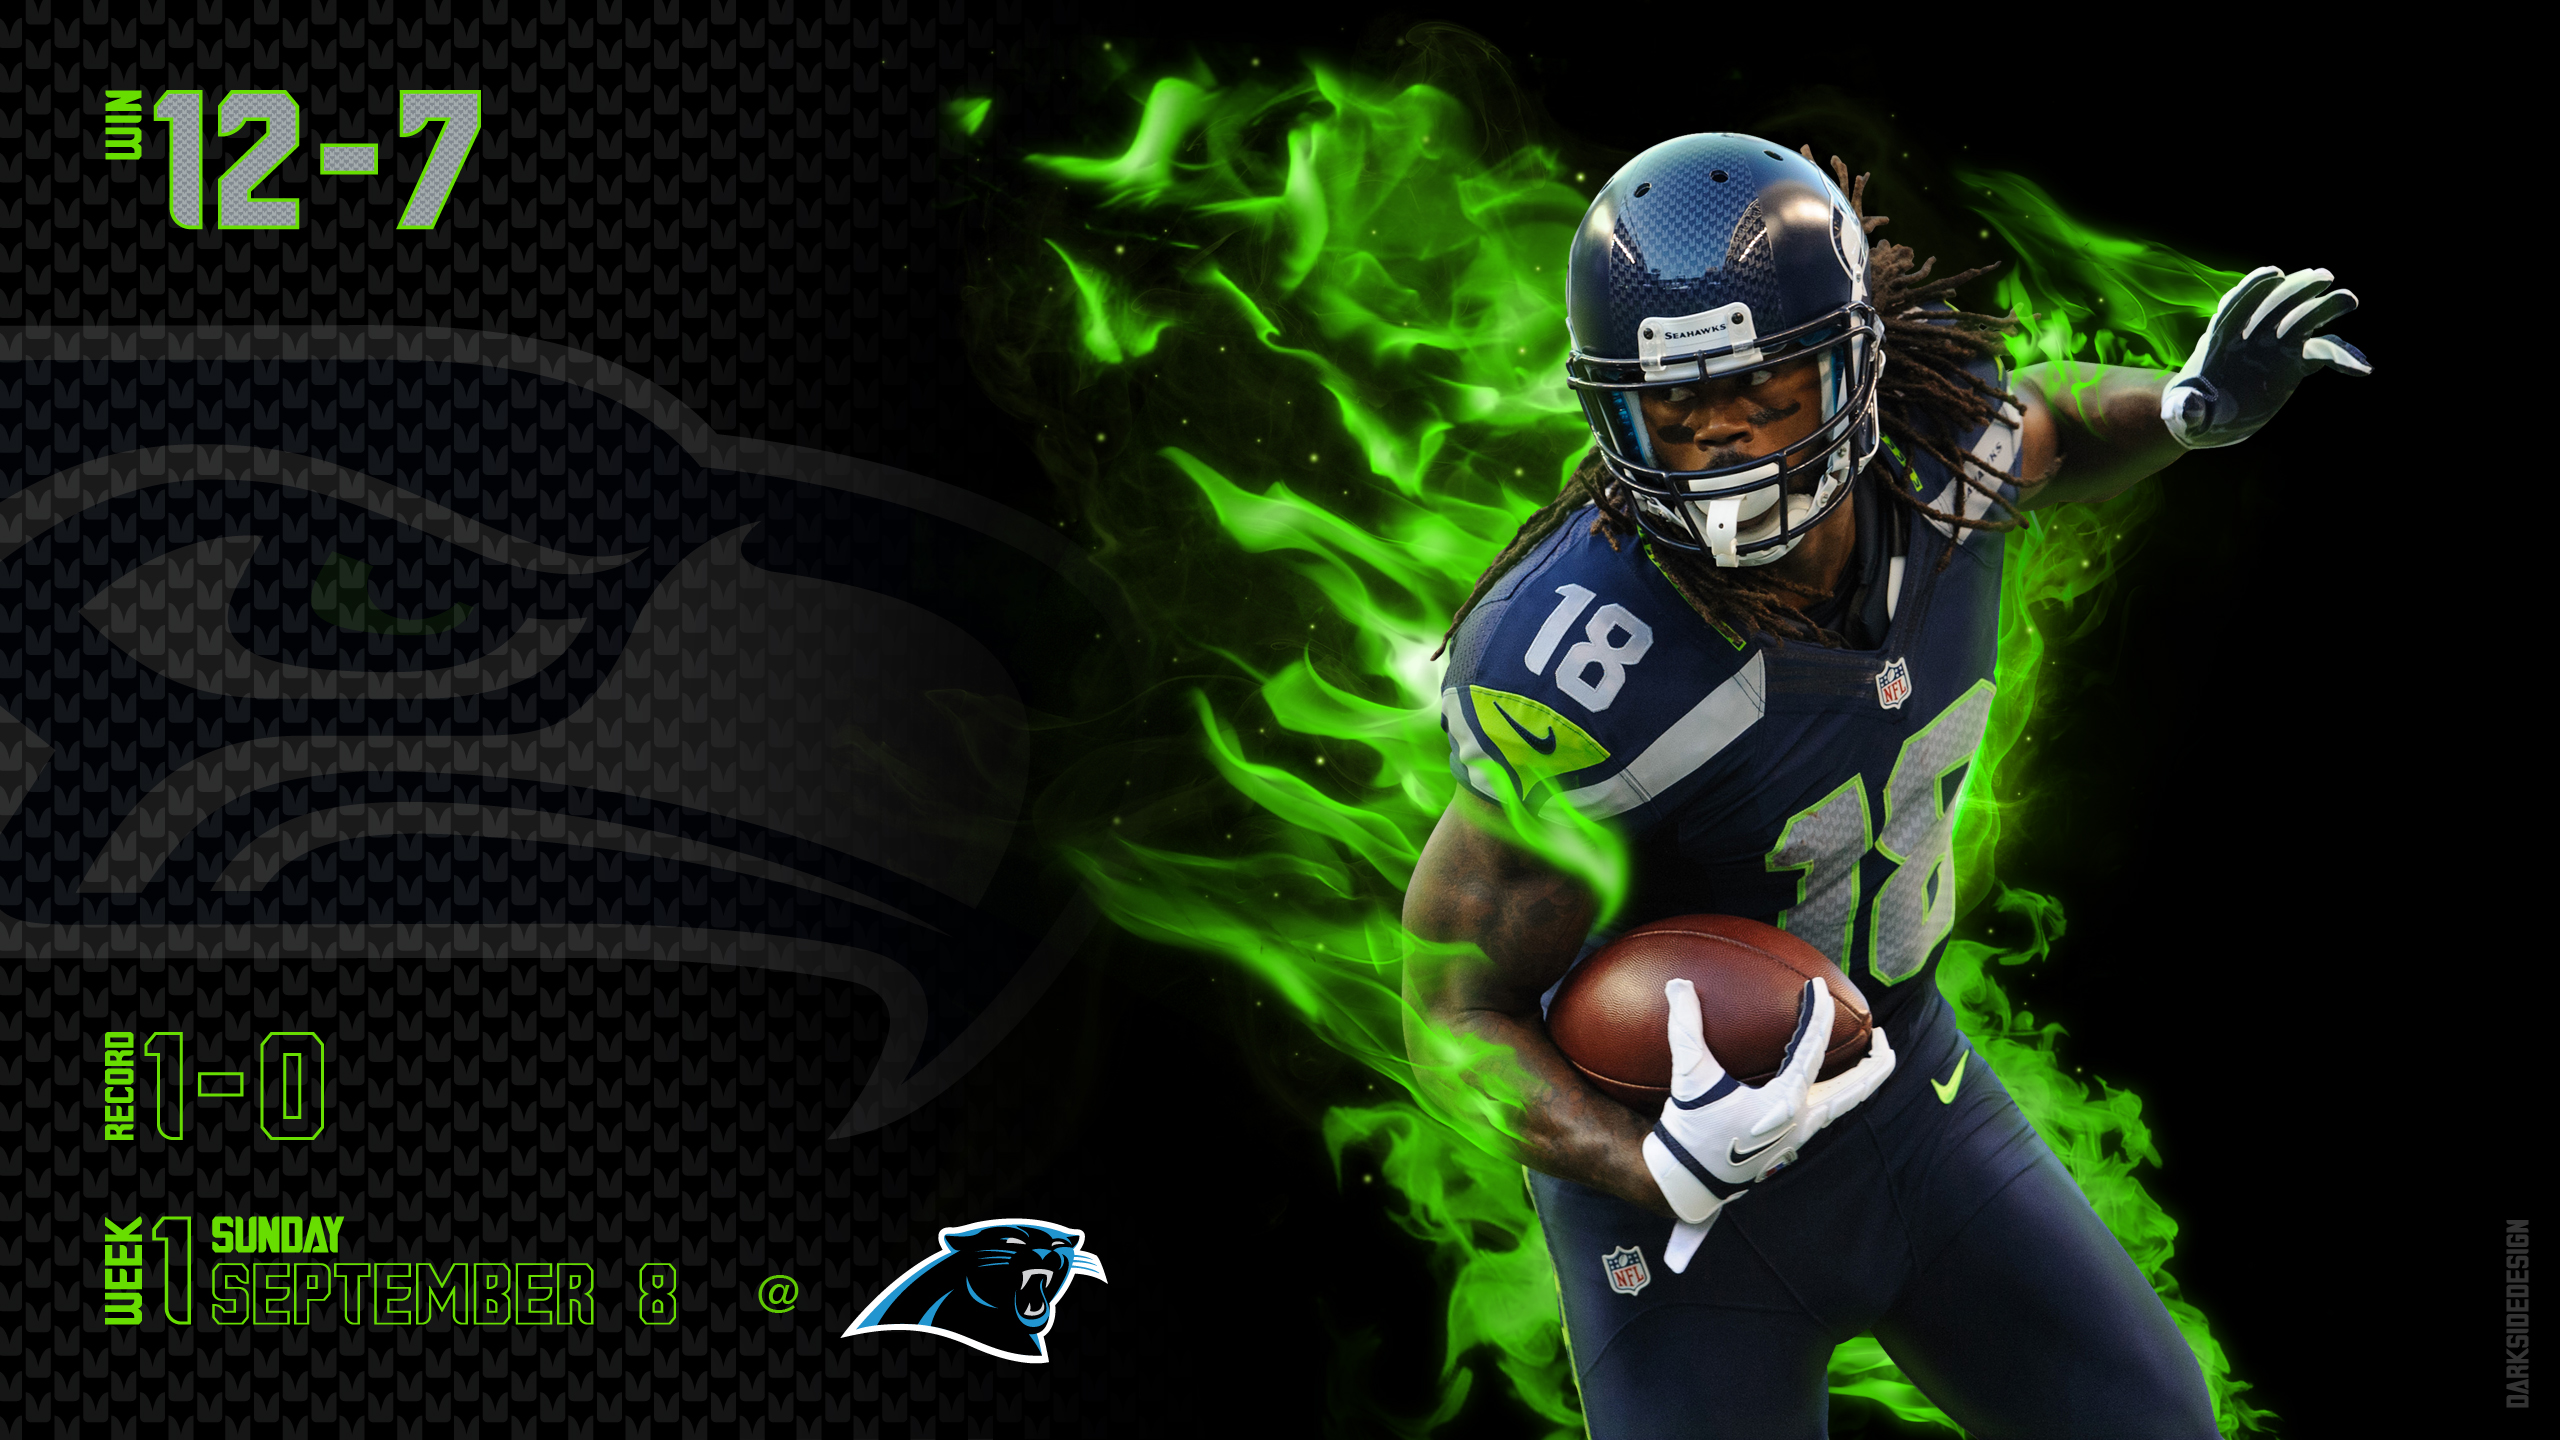 Free Download Cool Football Wallpapers Nfl 2560x1440 For Your Desktop Mobile Tablet Explore 73 Cool Nfl Football Wallpapers Free Nfl Wallpapers And Screensavers Nfl Team Desktop Wallpaper Nfl Football Teams Wallpapers